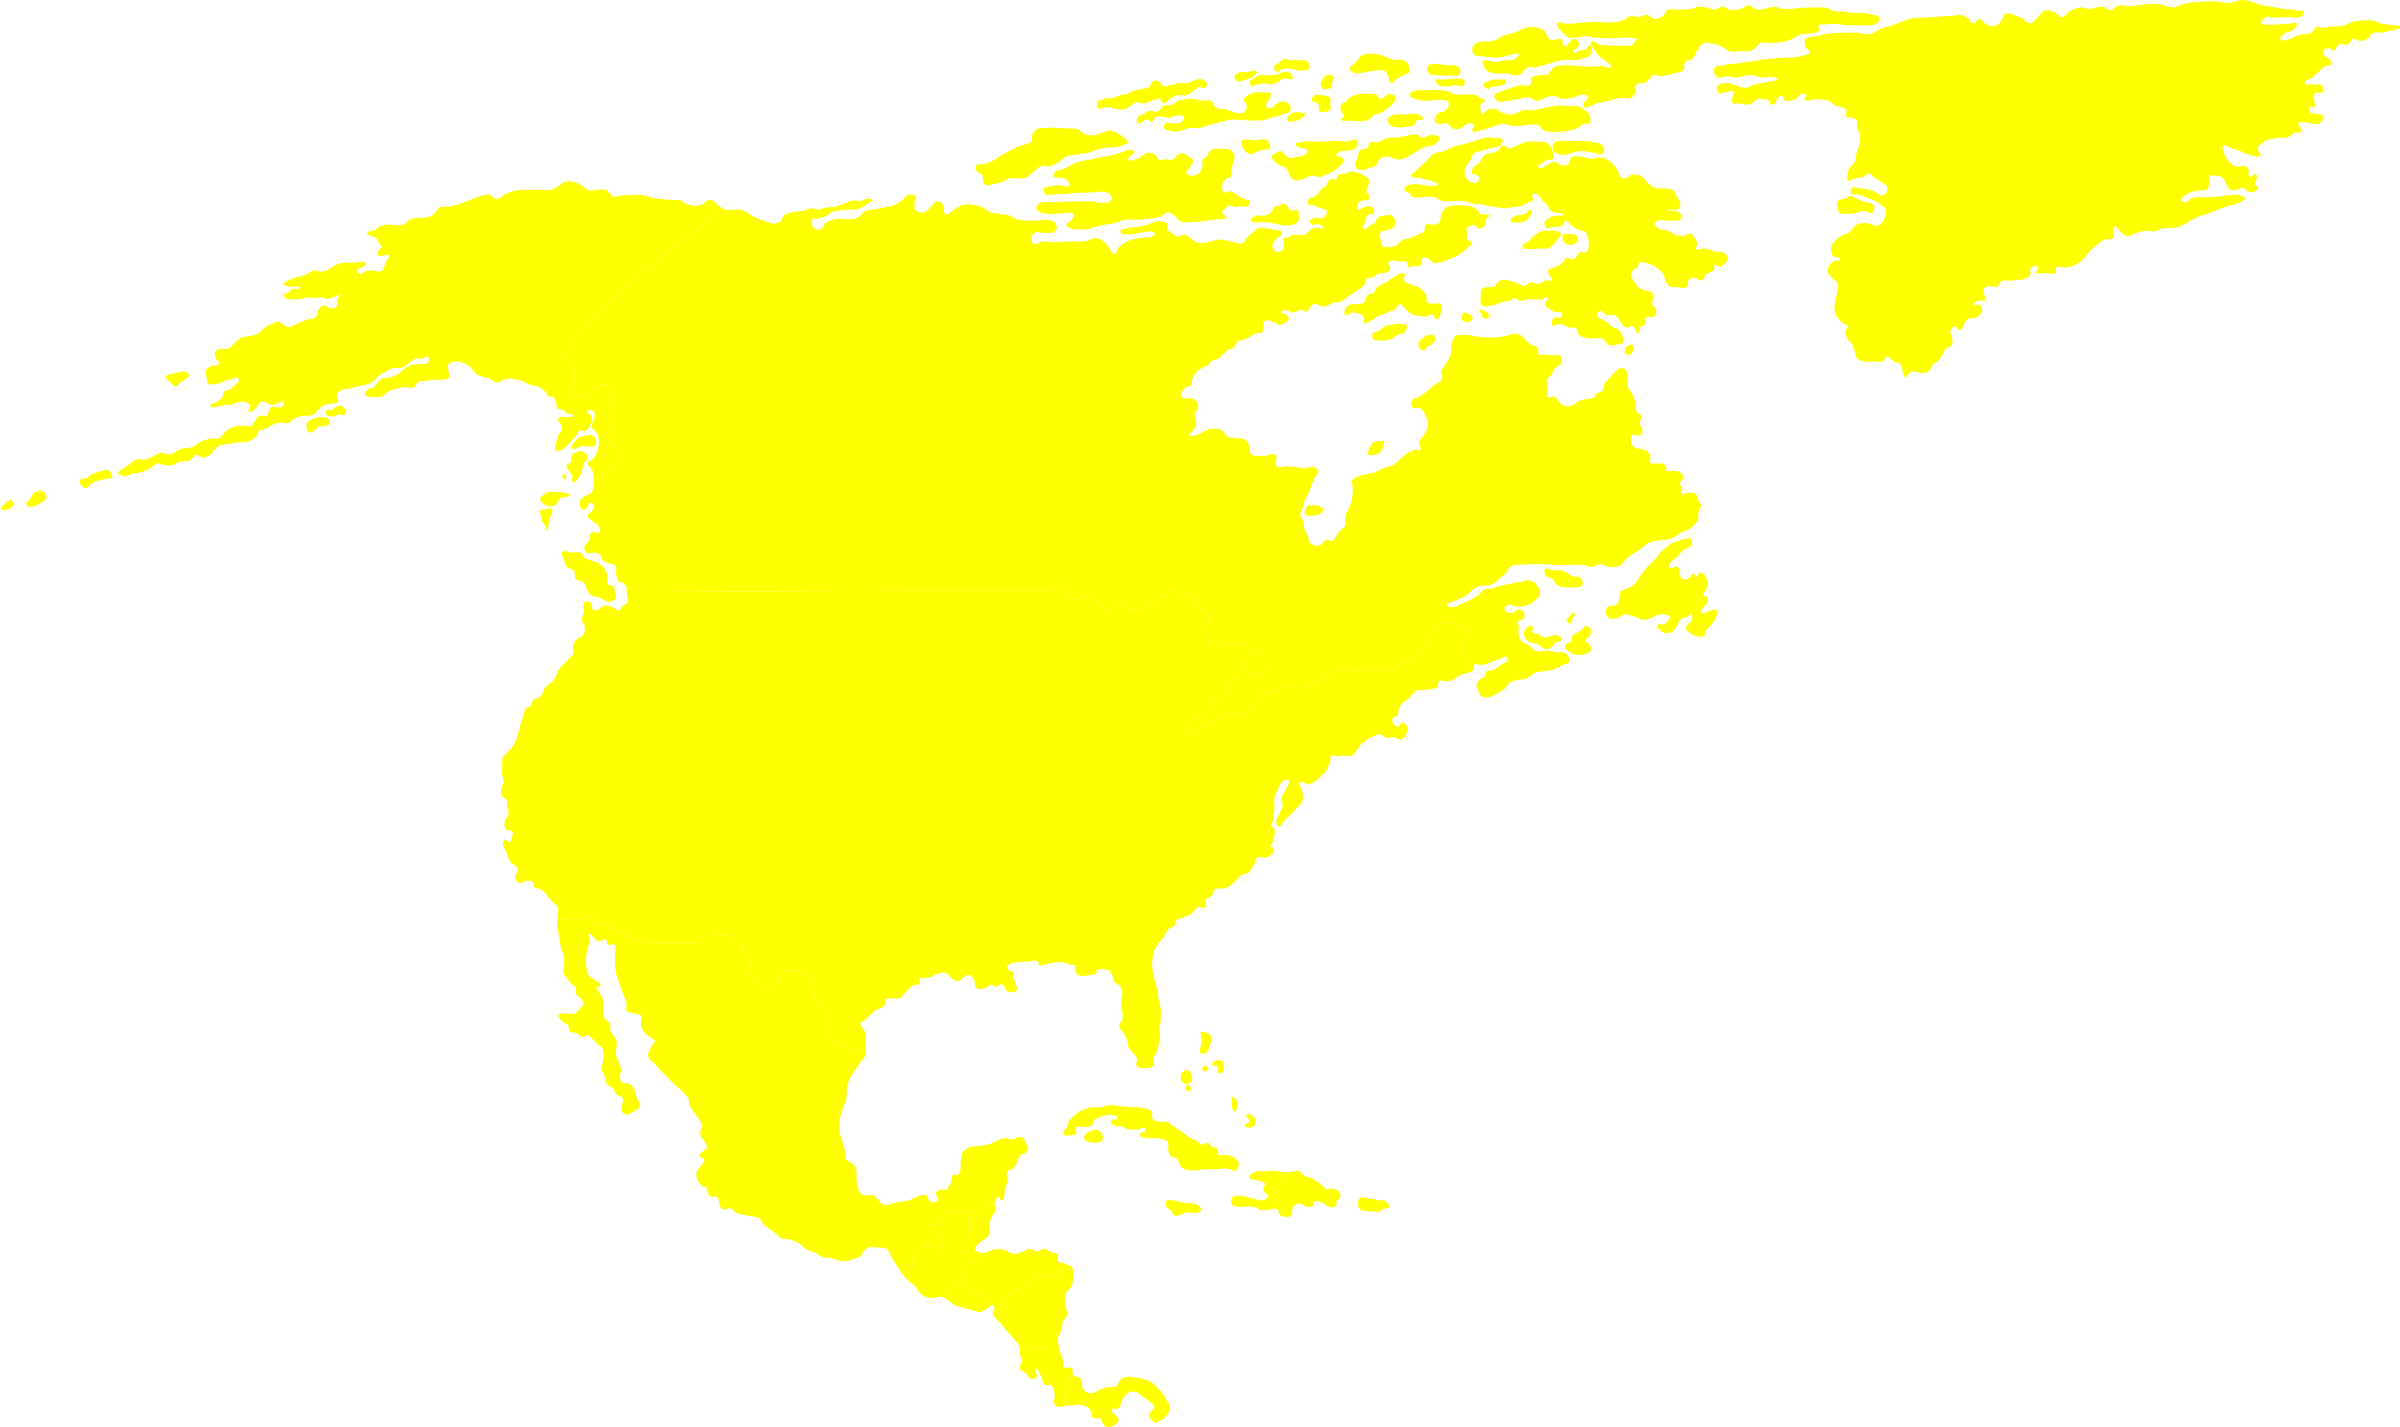 North america .png. American continent icons png